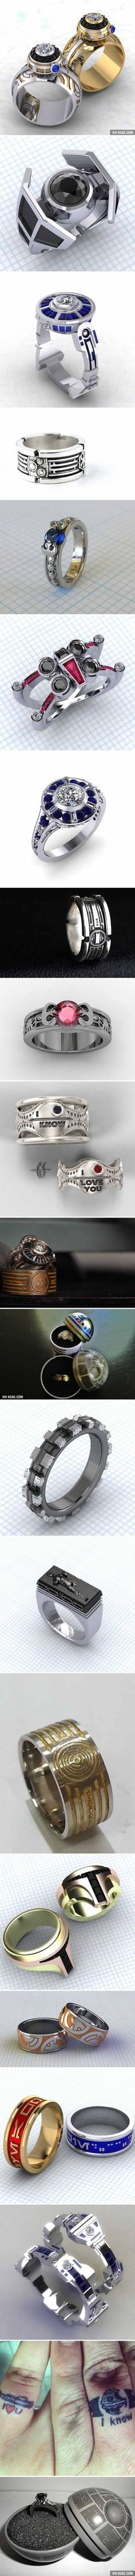 Awesome Star Wars inspired engagement rings & jewelry.